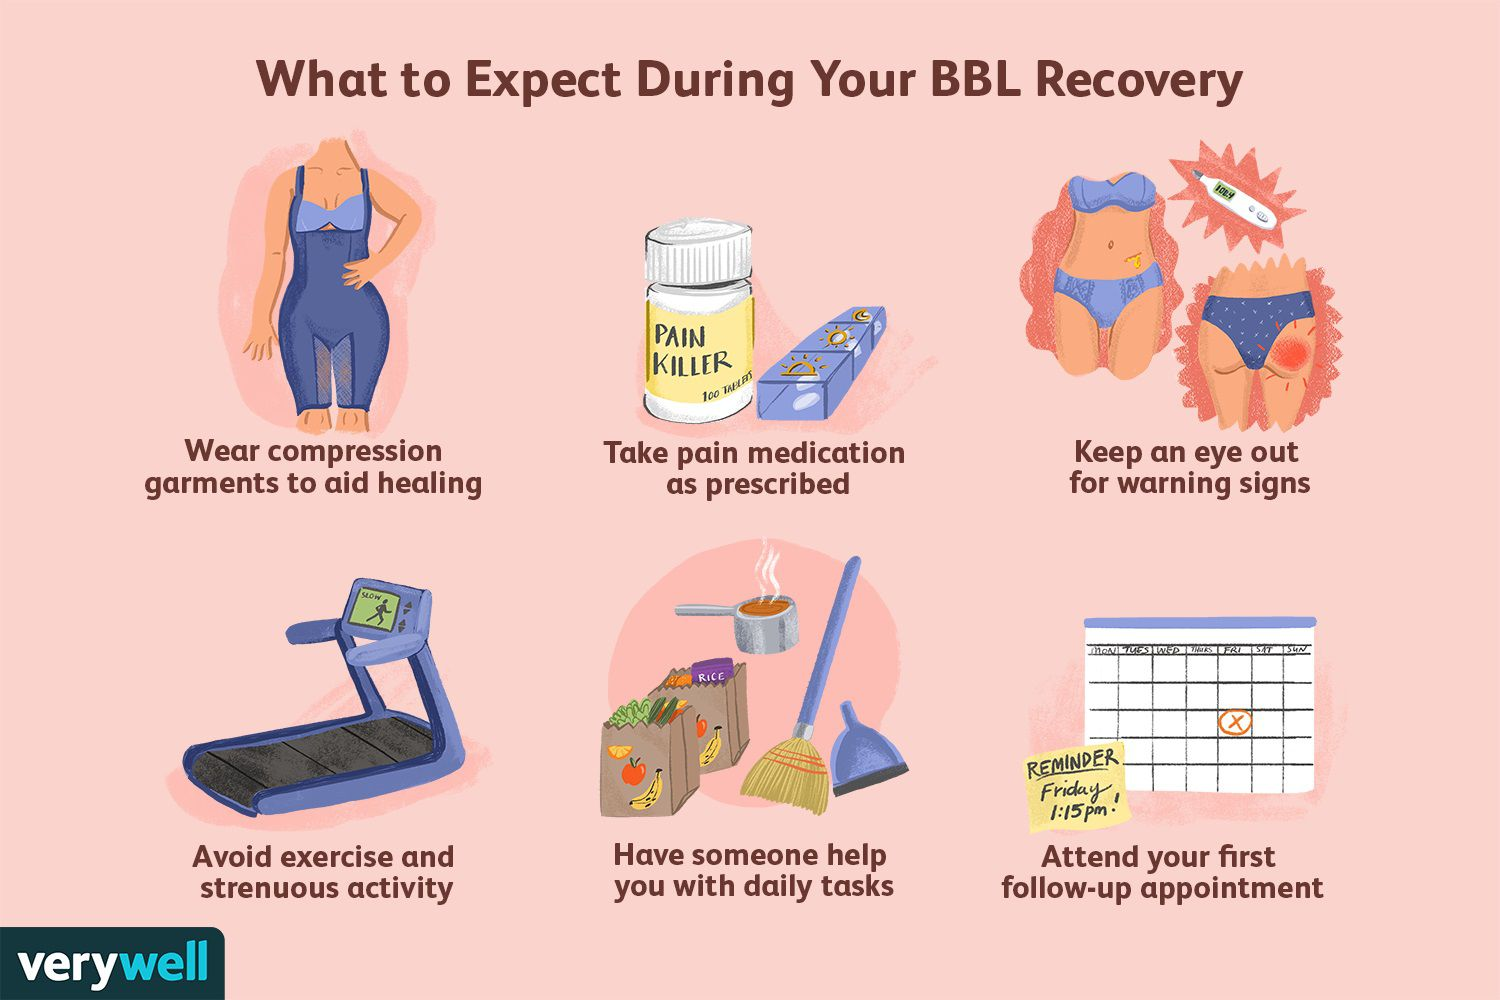 What to Expect During Your BBL Recovery